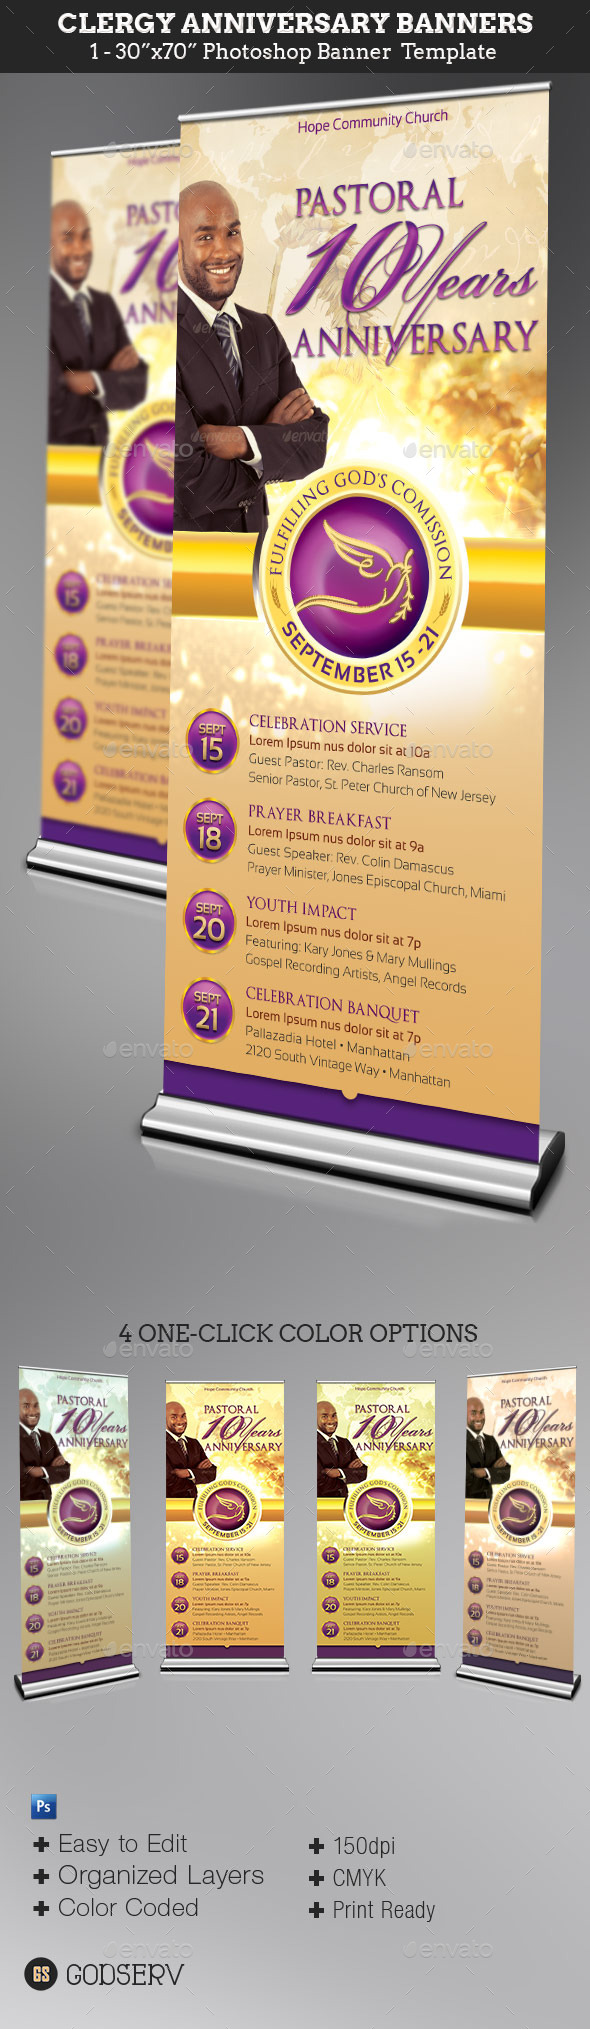 GraphicRiver Clergy Anniversary Banner Template 11107971